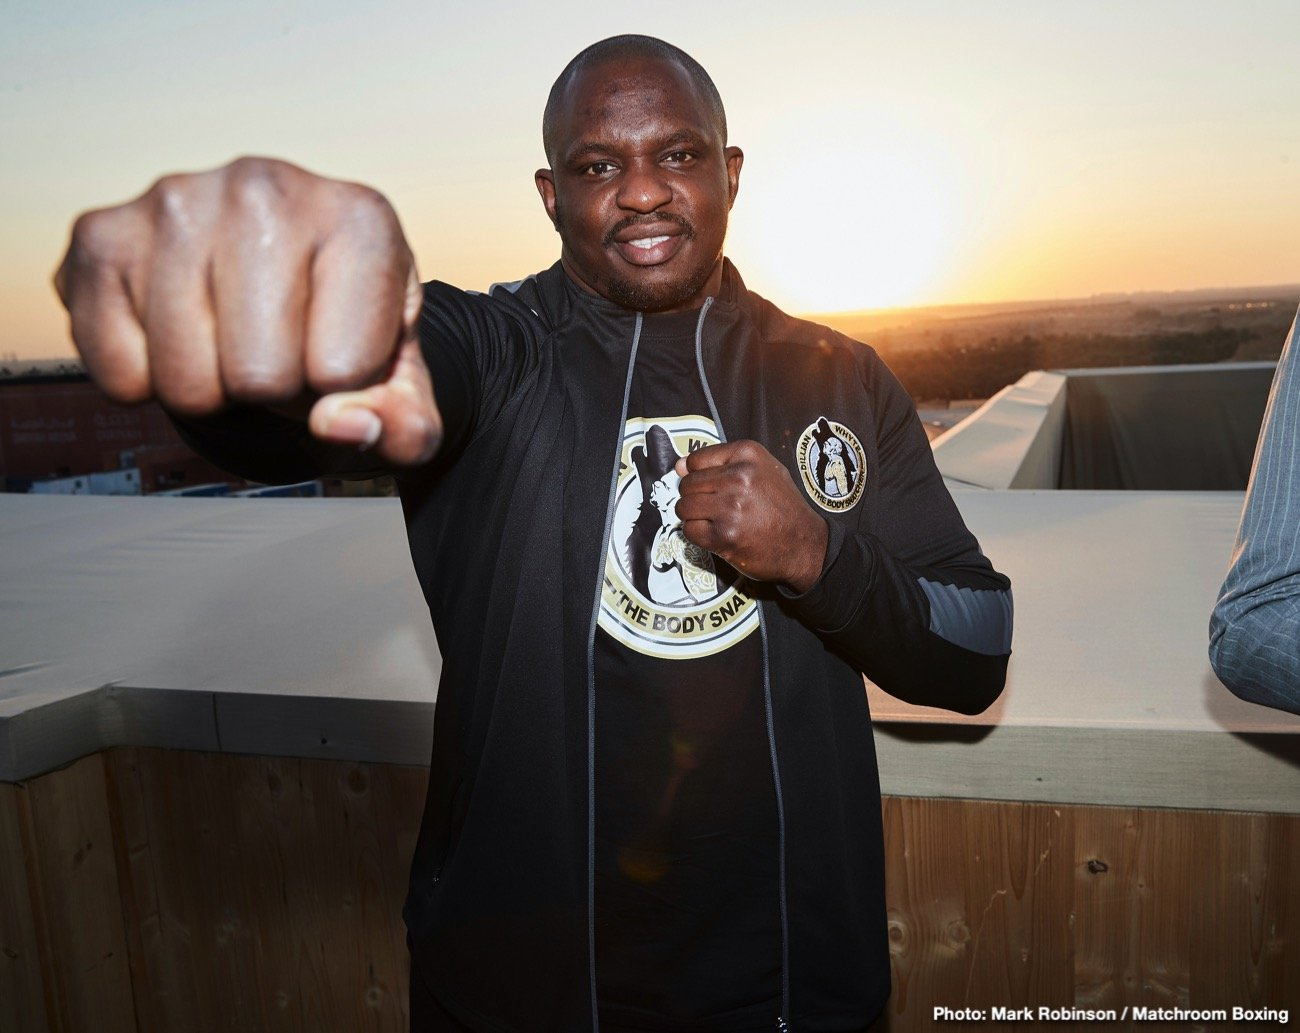 "Dillian Whyte - Like many of us, Dillian Whyte tuned into UFC 249 this past Saturday night, the highly ranked British heavyweight contender no doubt as excited as the rest of us to see some live combat sporting action during these strange, strange times. And though Whyte has expressed serious interest in having an MMA fight before now, ""The Body Snatcher"" is perhaps even more pumped up at the idea of facing Francis Ngannou."